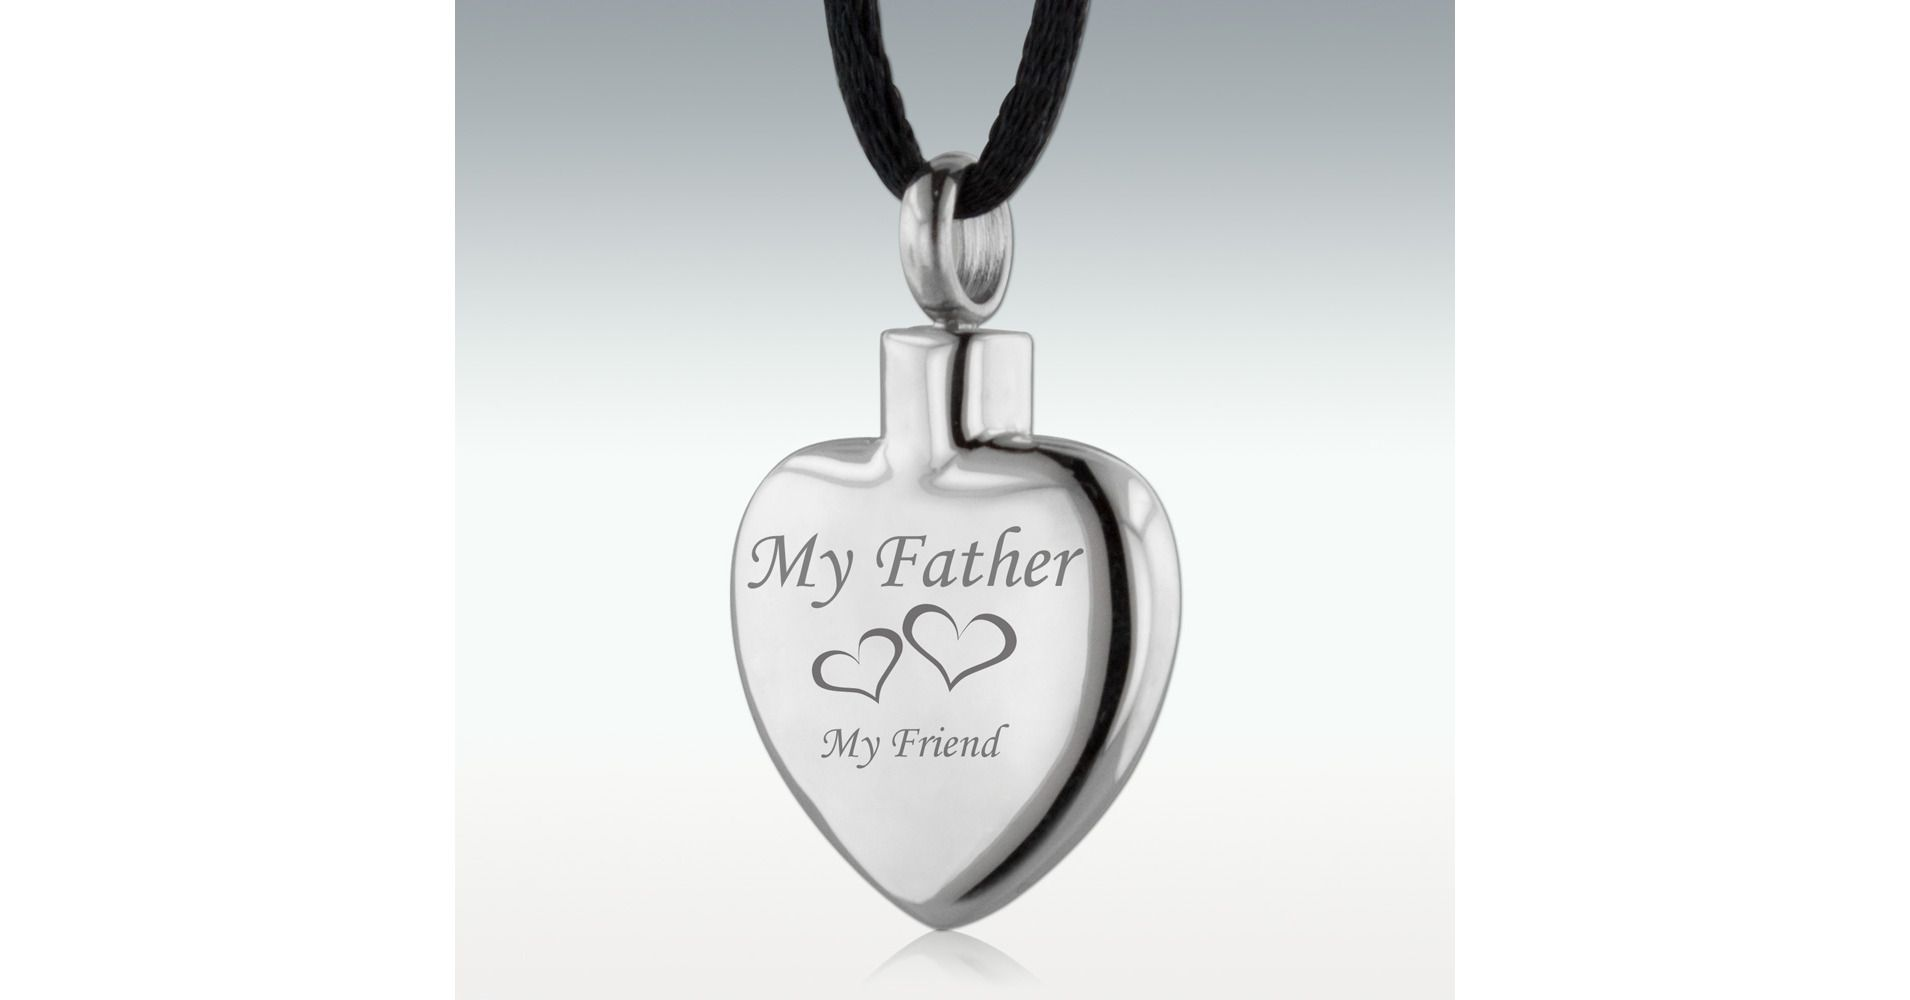 My Father My Friend Heart Stainless Steel Cremation Jewelry